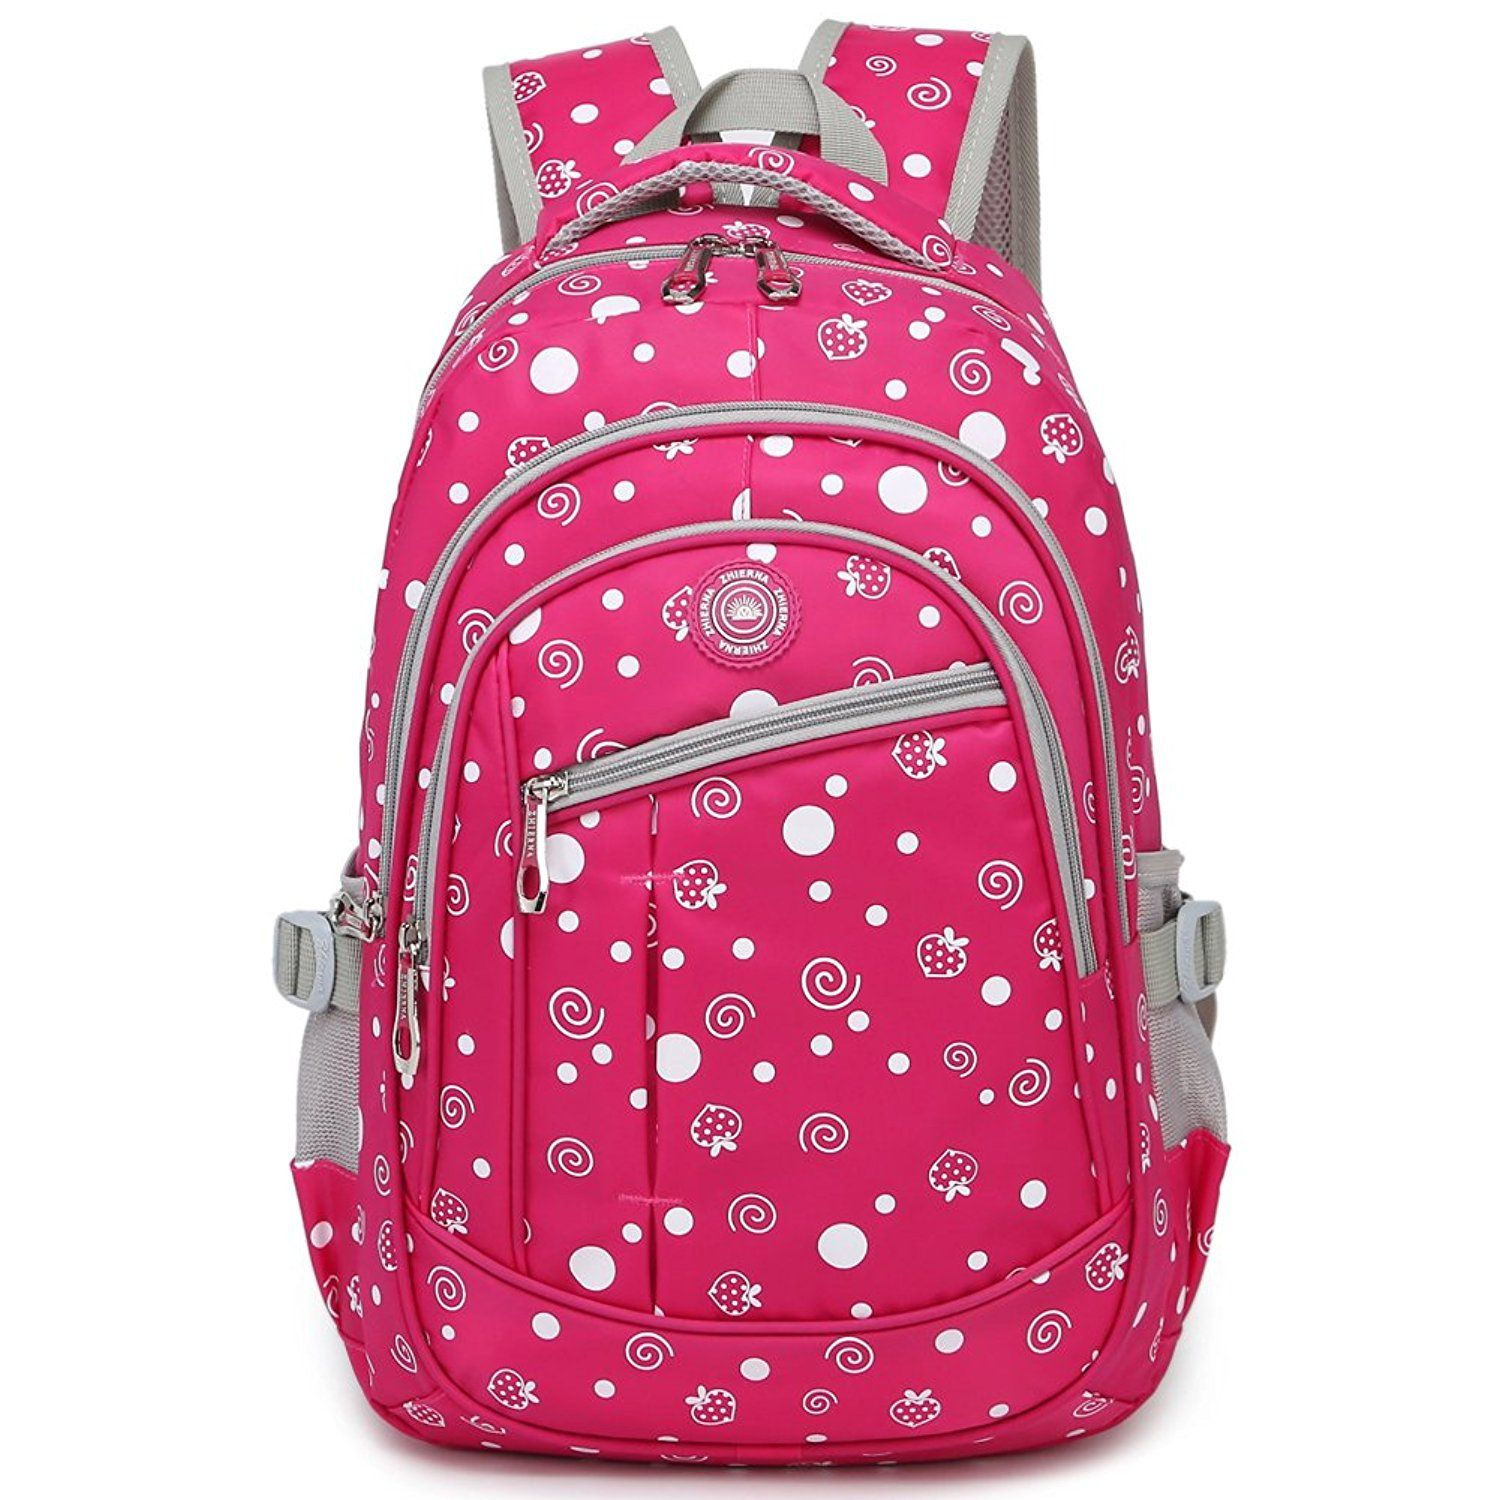 fresh style candy color backpack for elementary or middle school